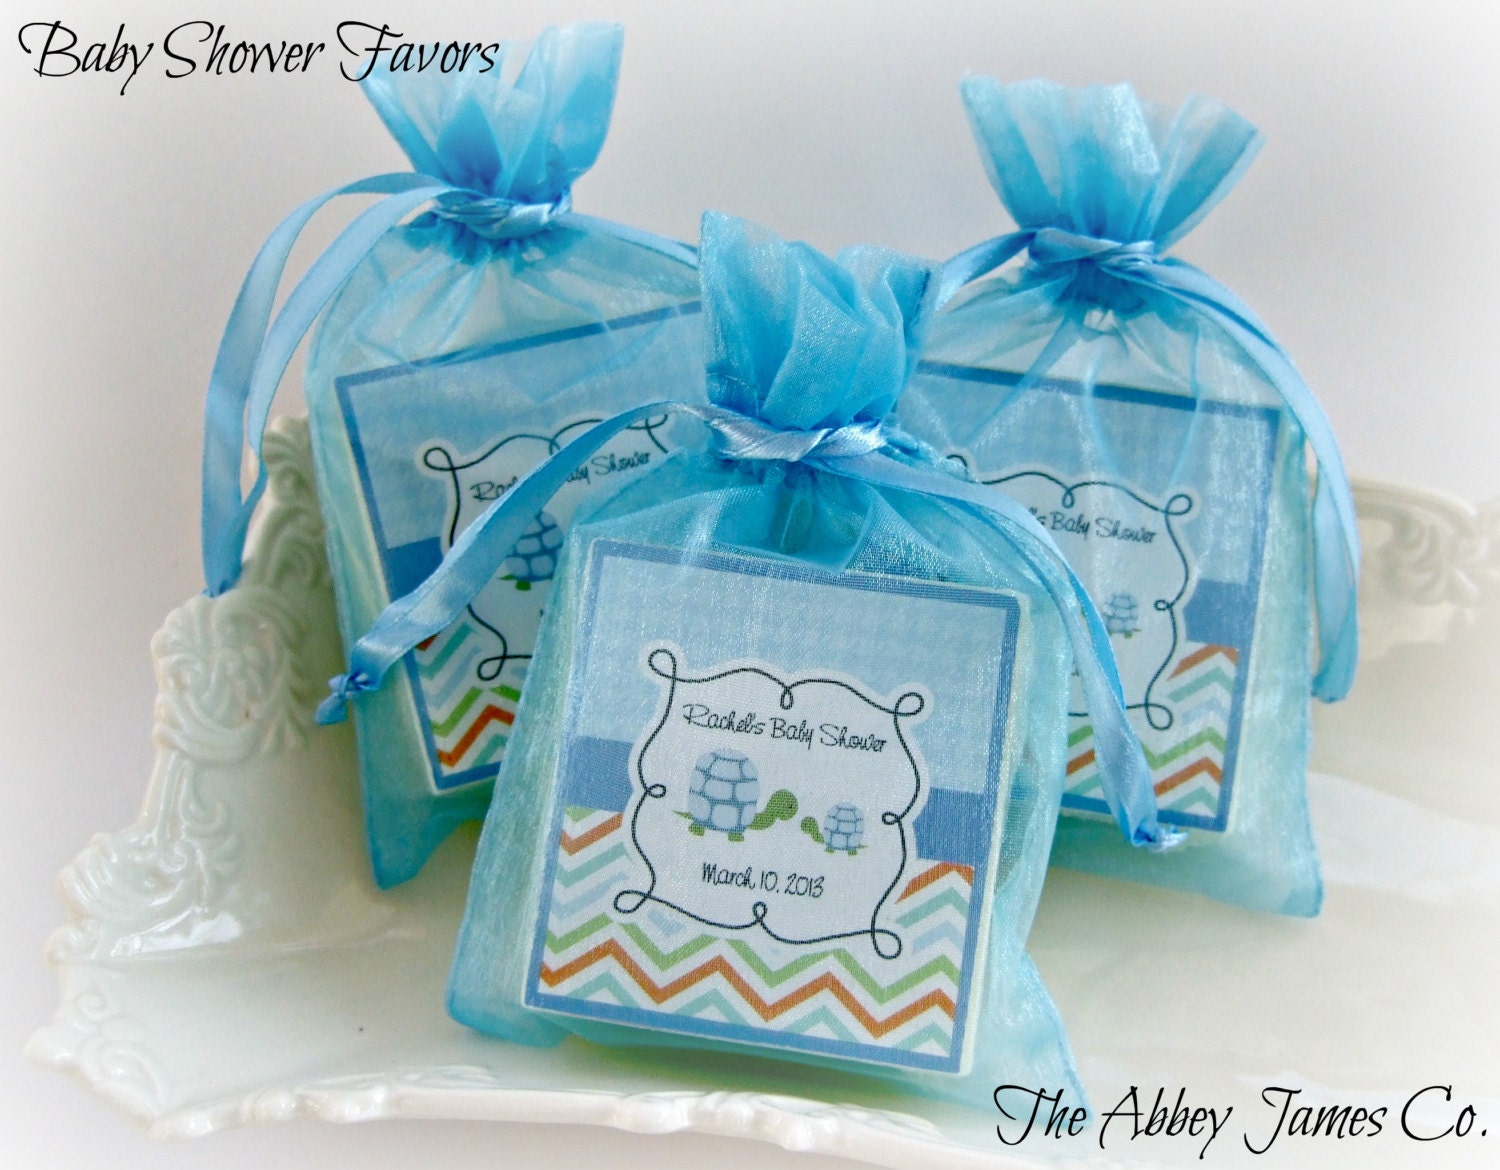 baby shower favors  deals on  blocks, Baby shower